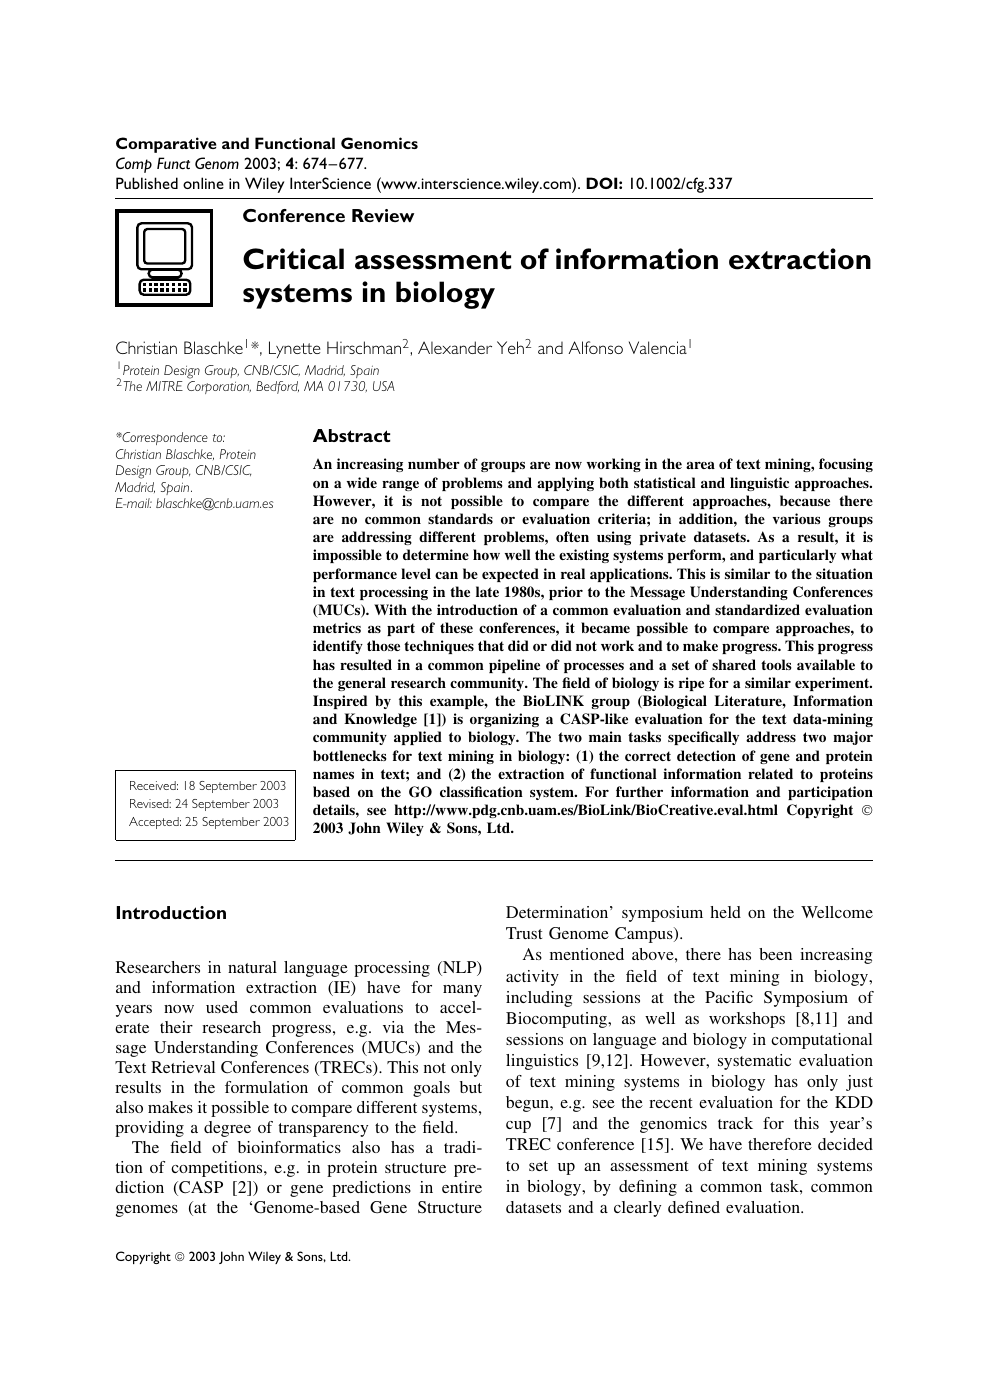 Critical Assessment of Information Extraction Systems in